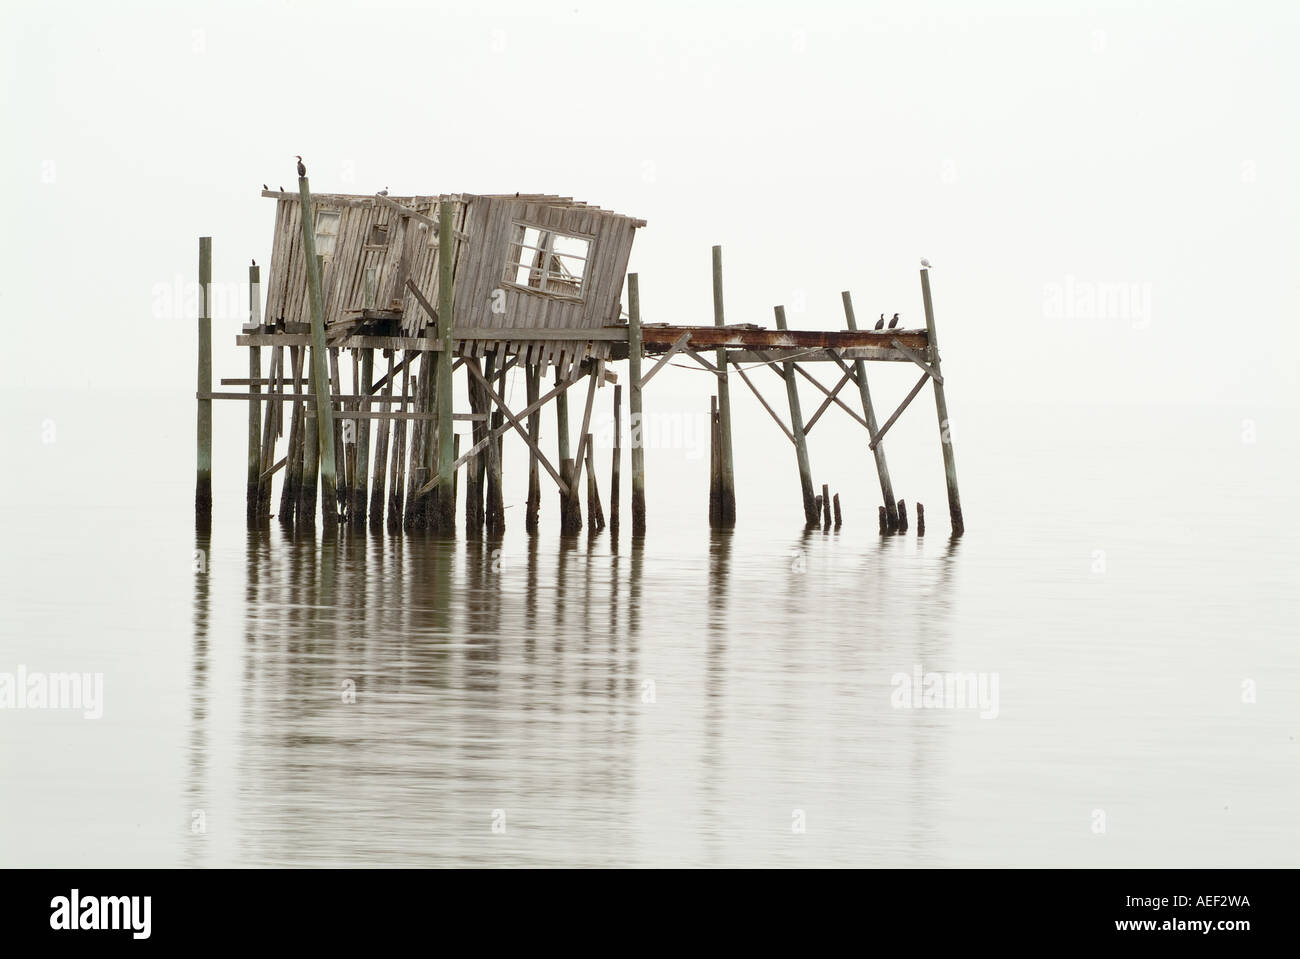 Good Wooden Damaged Run Down Boat House Over Water Cedar Key Florida Coastal  Scenic Moody Weathered Crusty Wood Structure